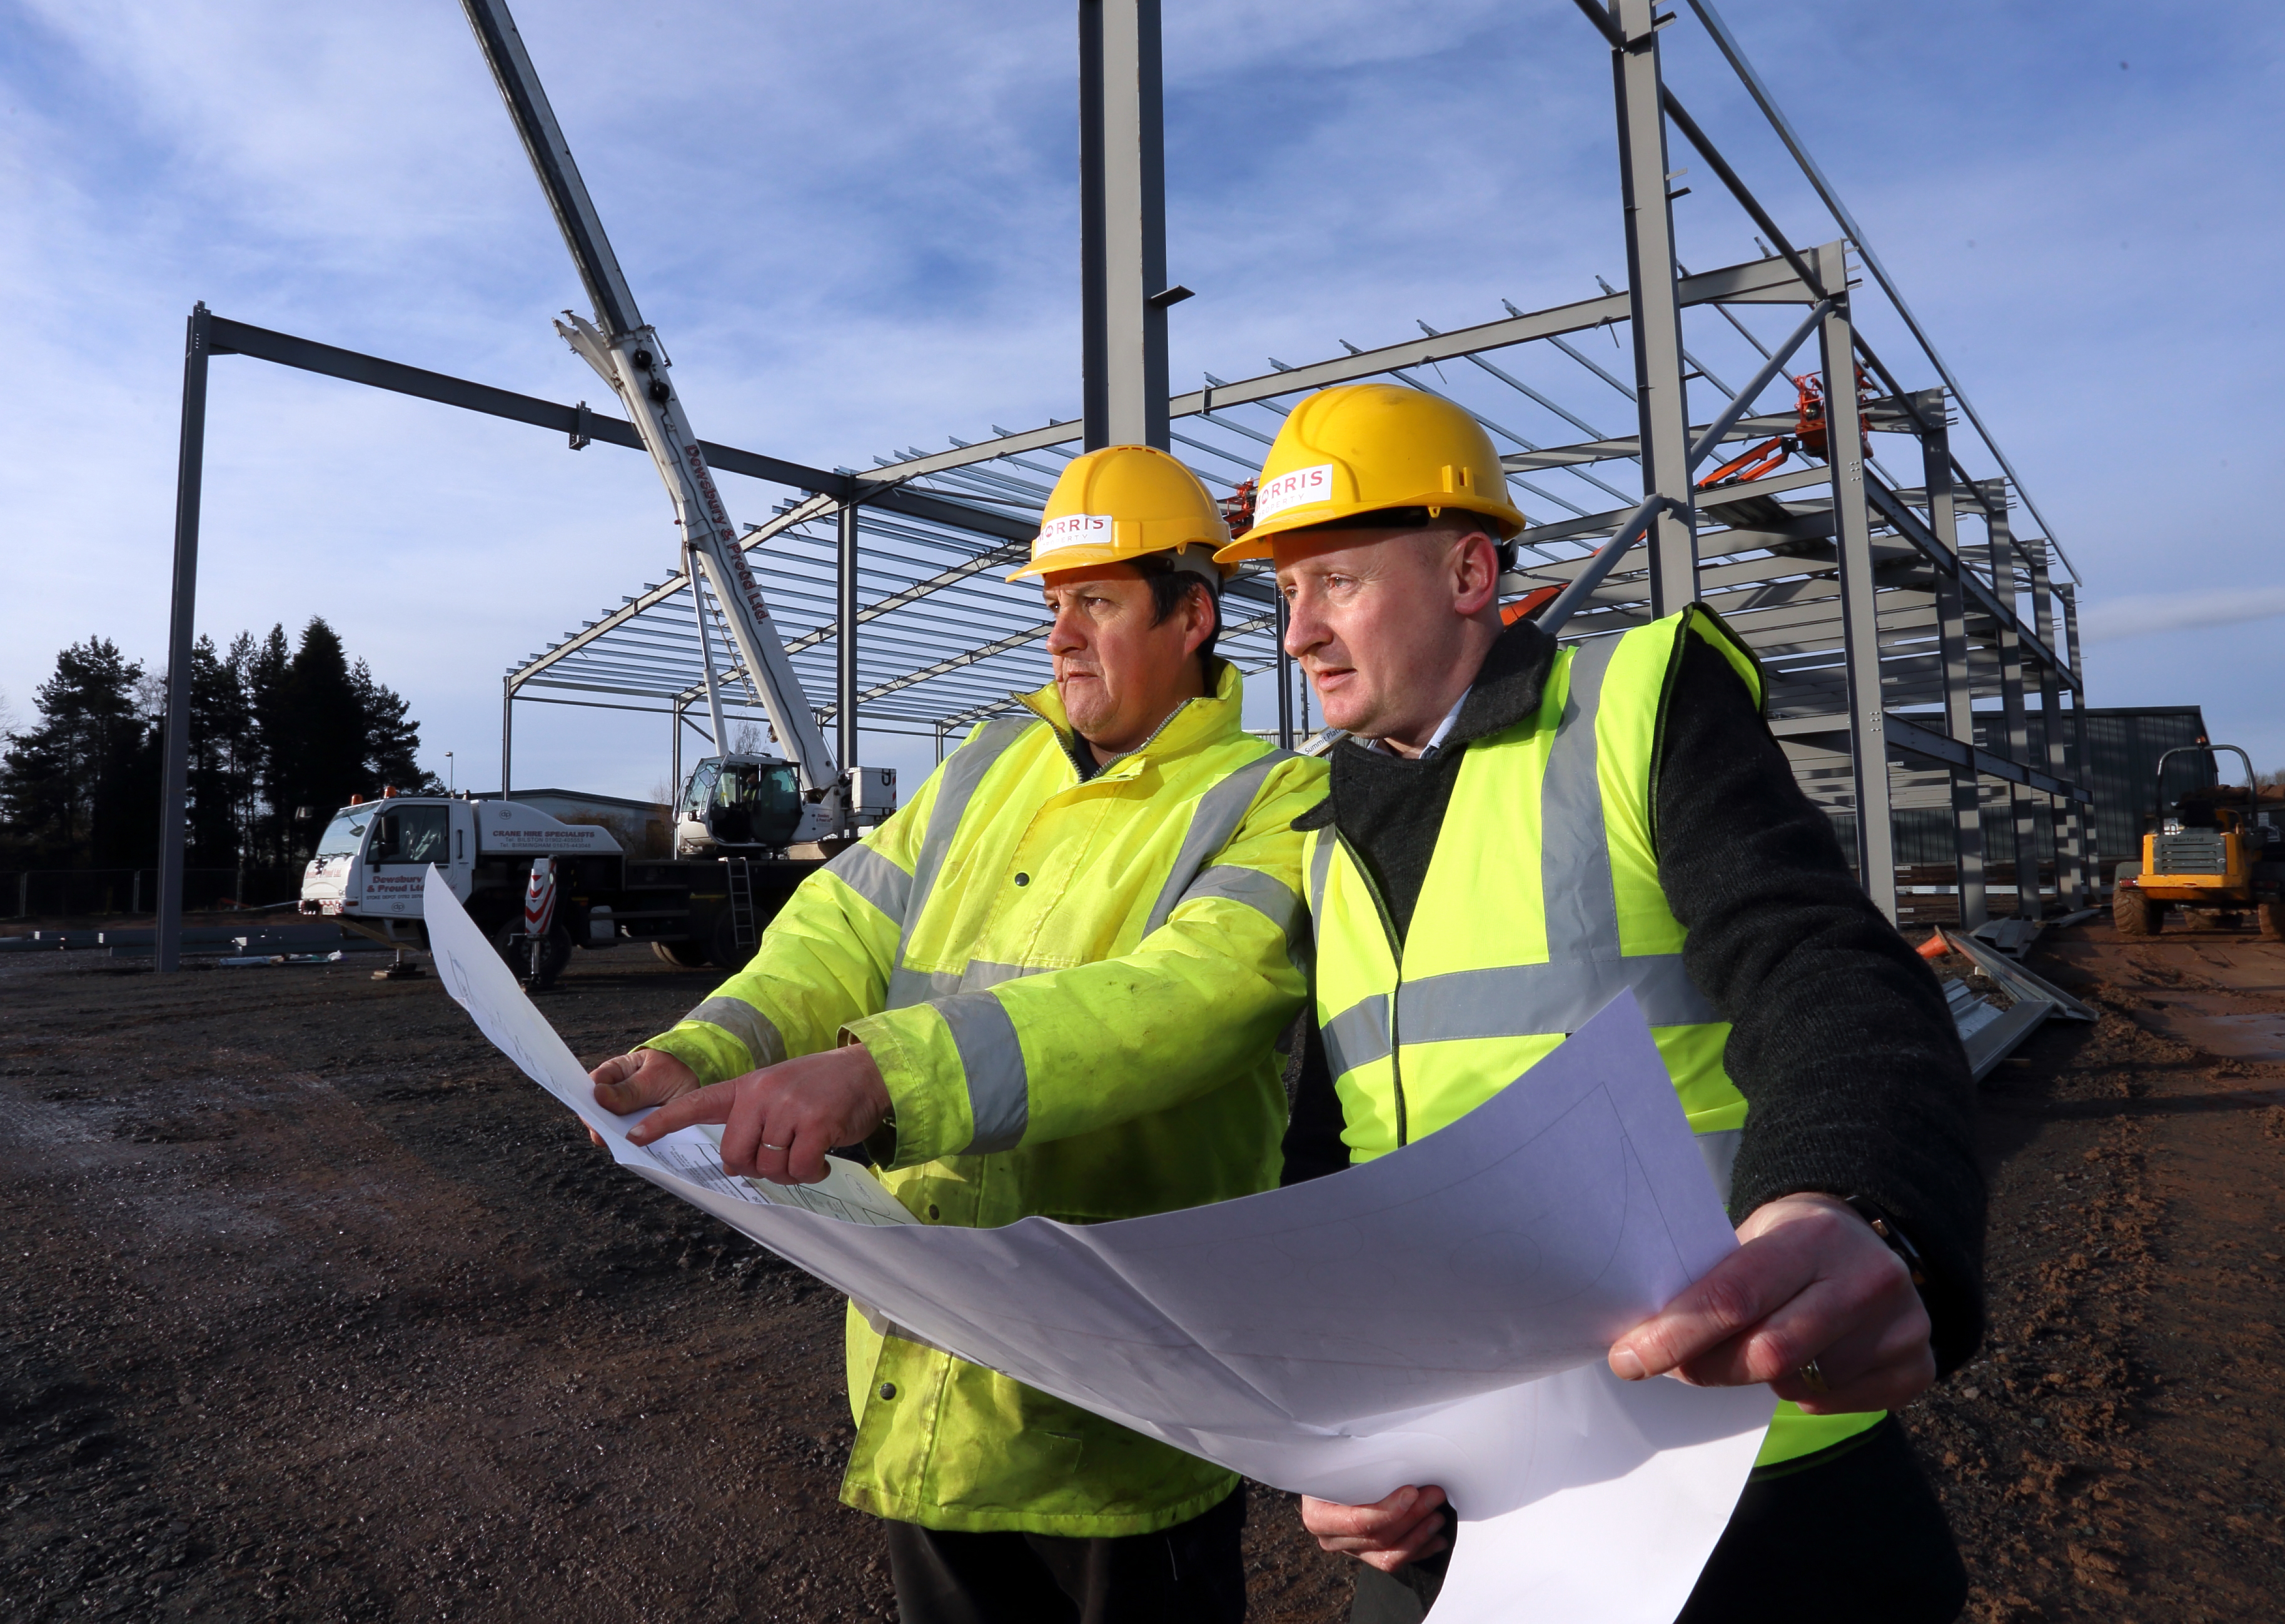 Property company secures second contract with Council